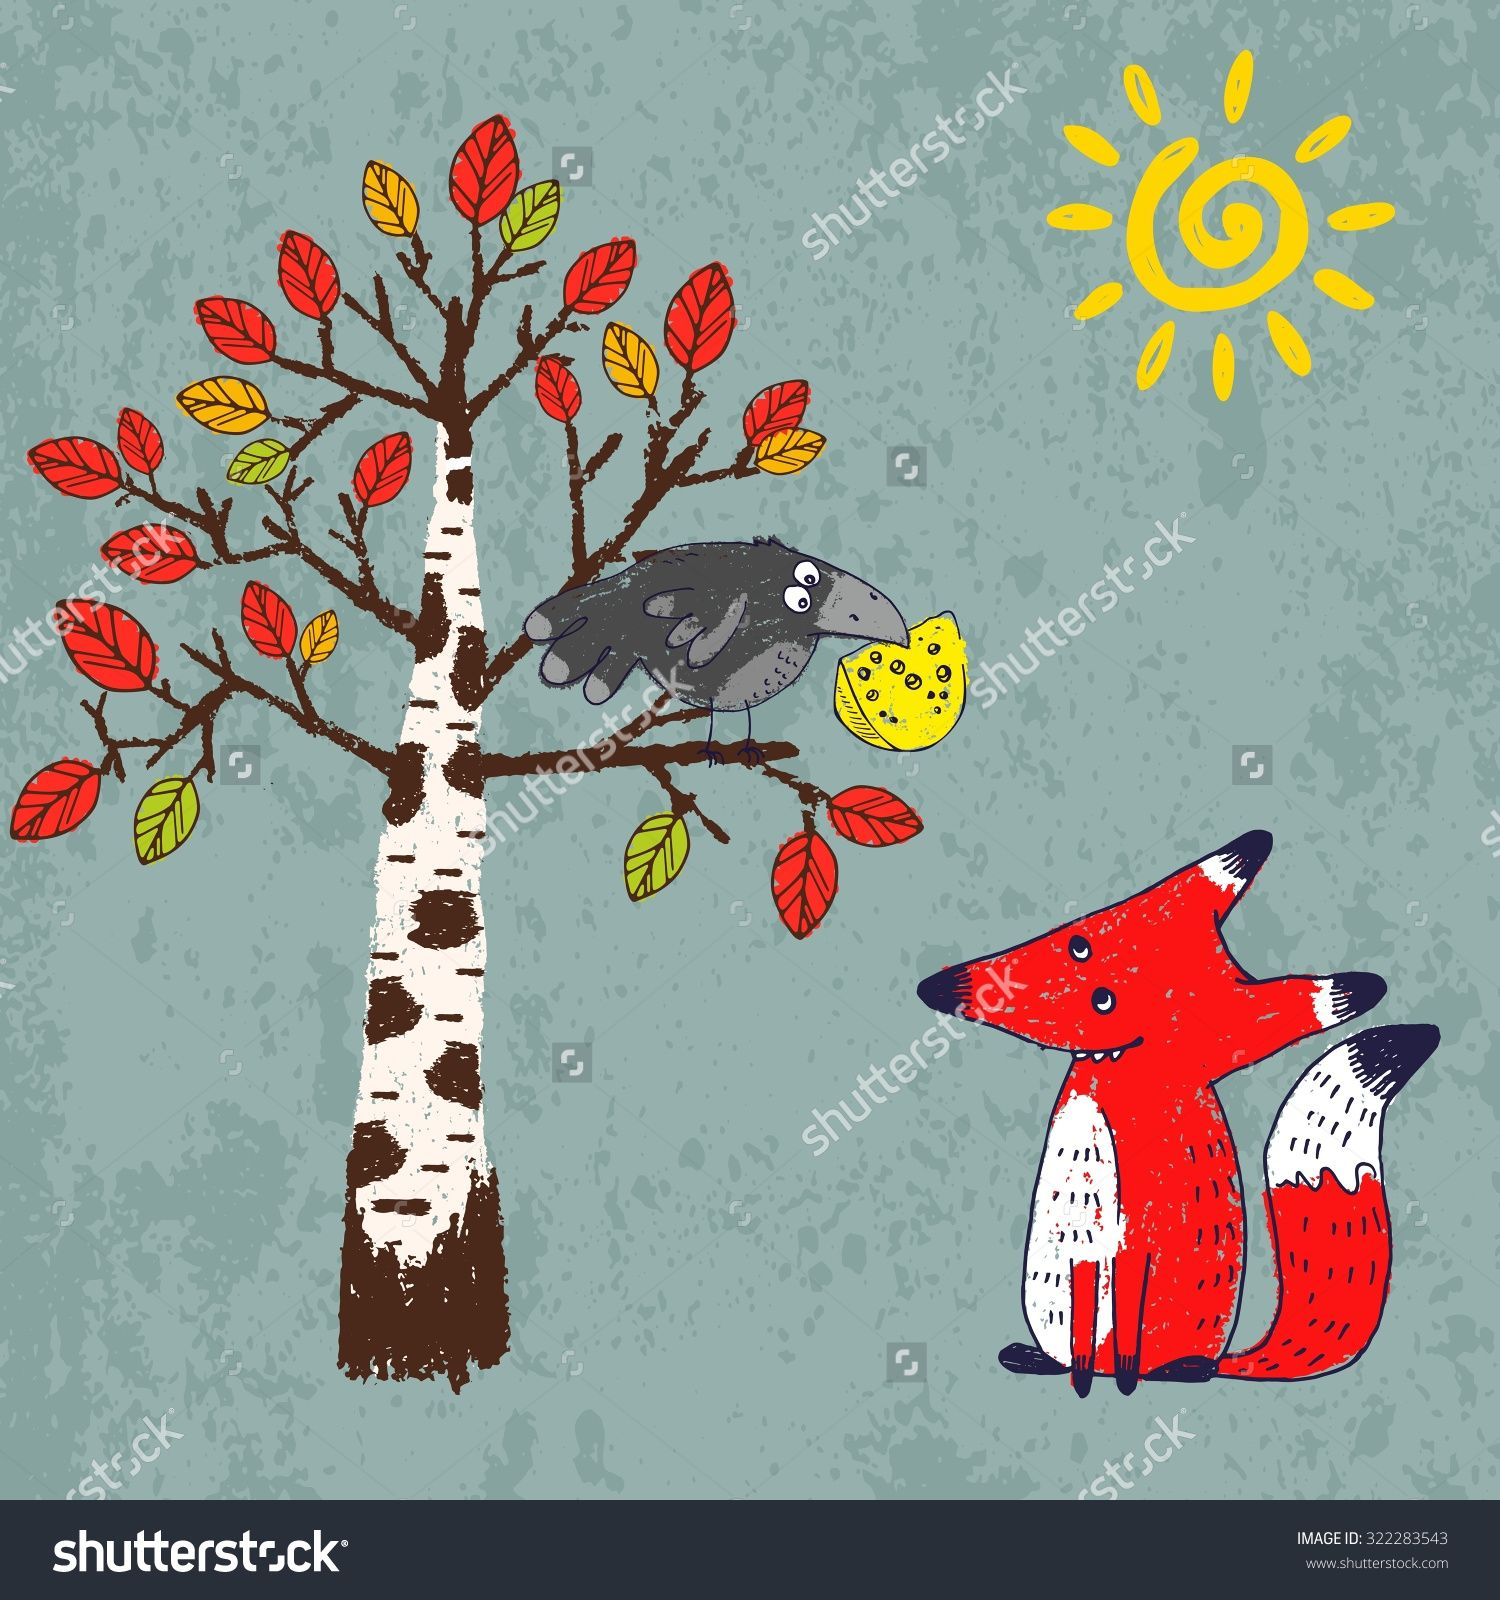 "Vector Illustration In Comic Style For Aesop'S Fable ""The Fox And The Crow"". Crayon Drawn Cartoon Picture Of Crafty Red Fox And Silly Black Crow With A Piece Of Cheese In Its Beak - 322283543 : Shutterstock"